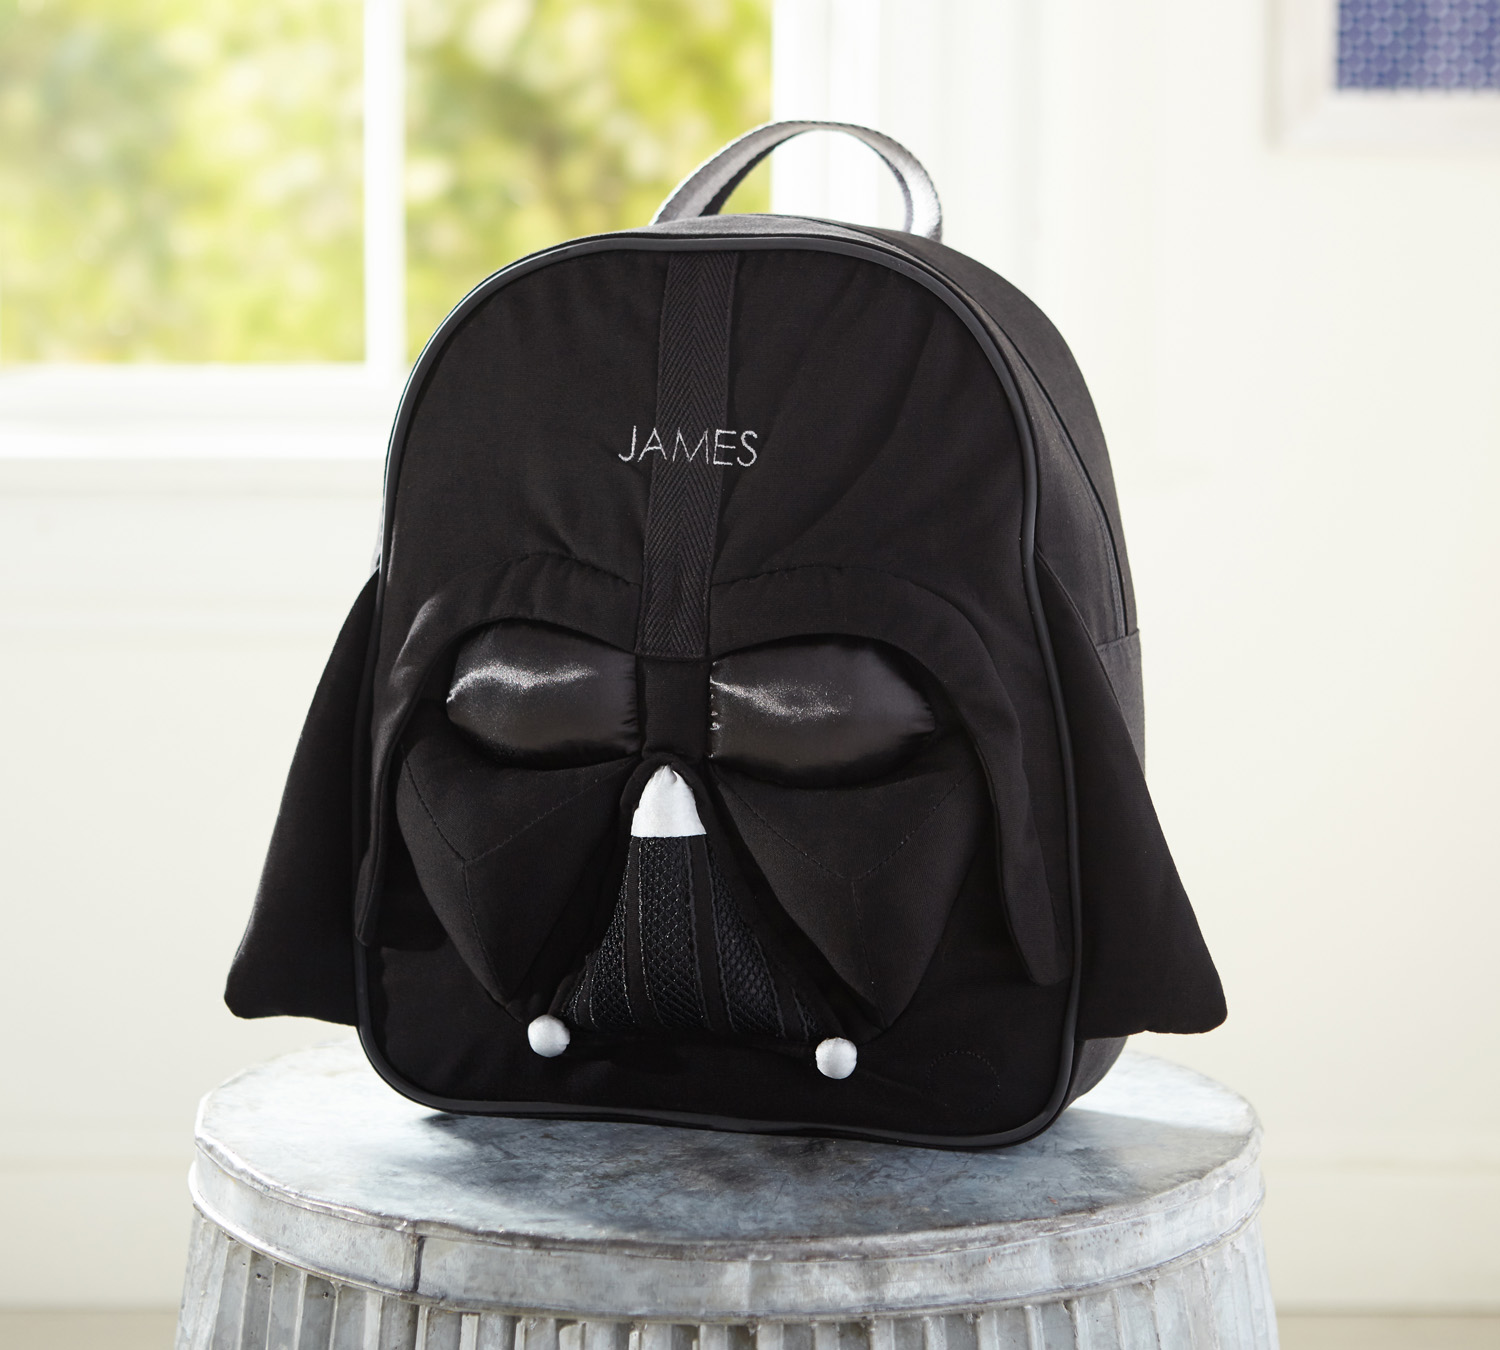 anywhere chair insert steel in wwe pottery barn star wars collection - preview!   starwars.com